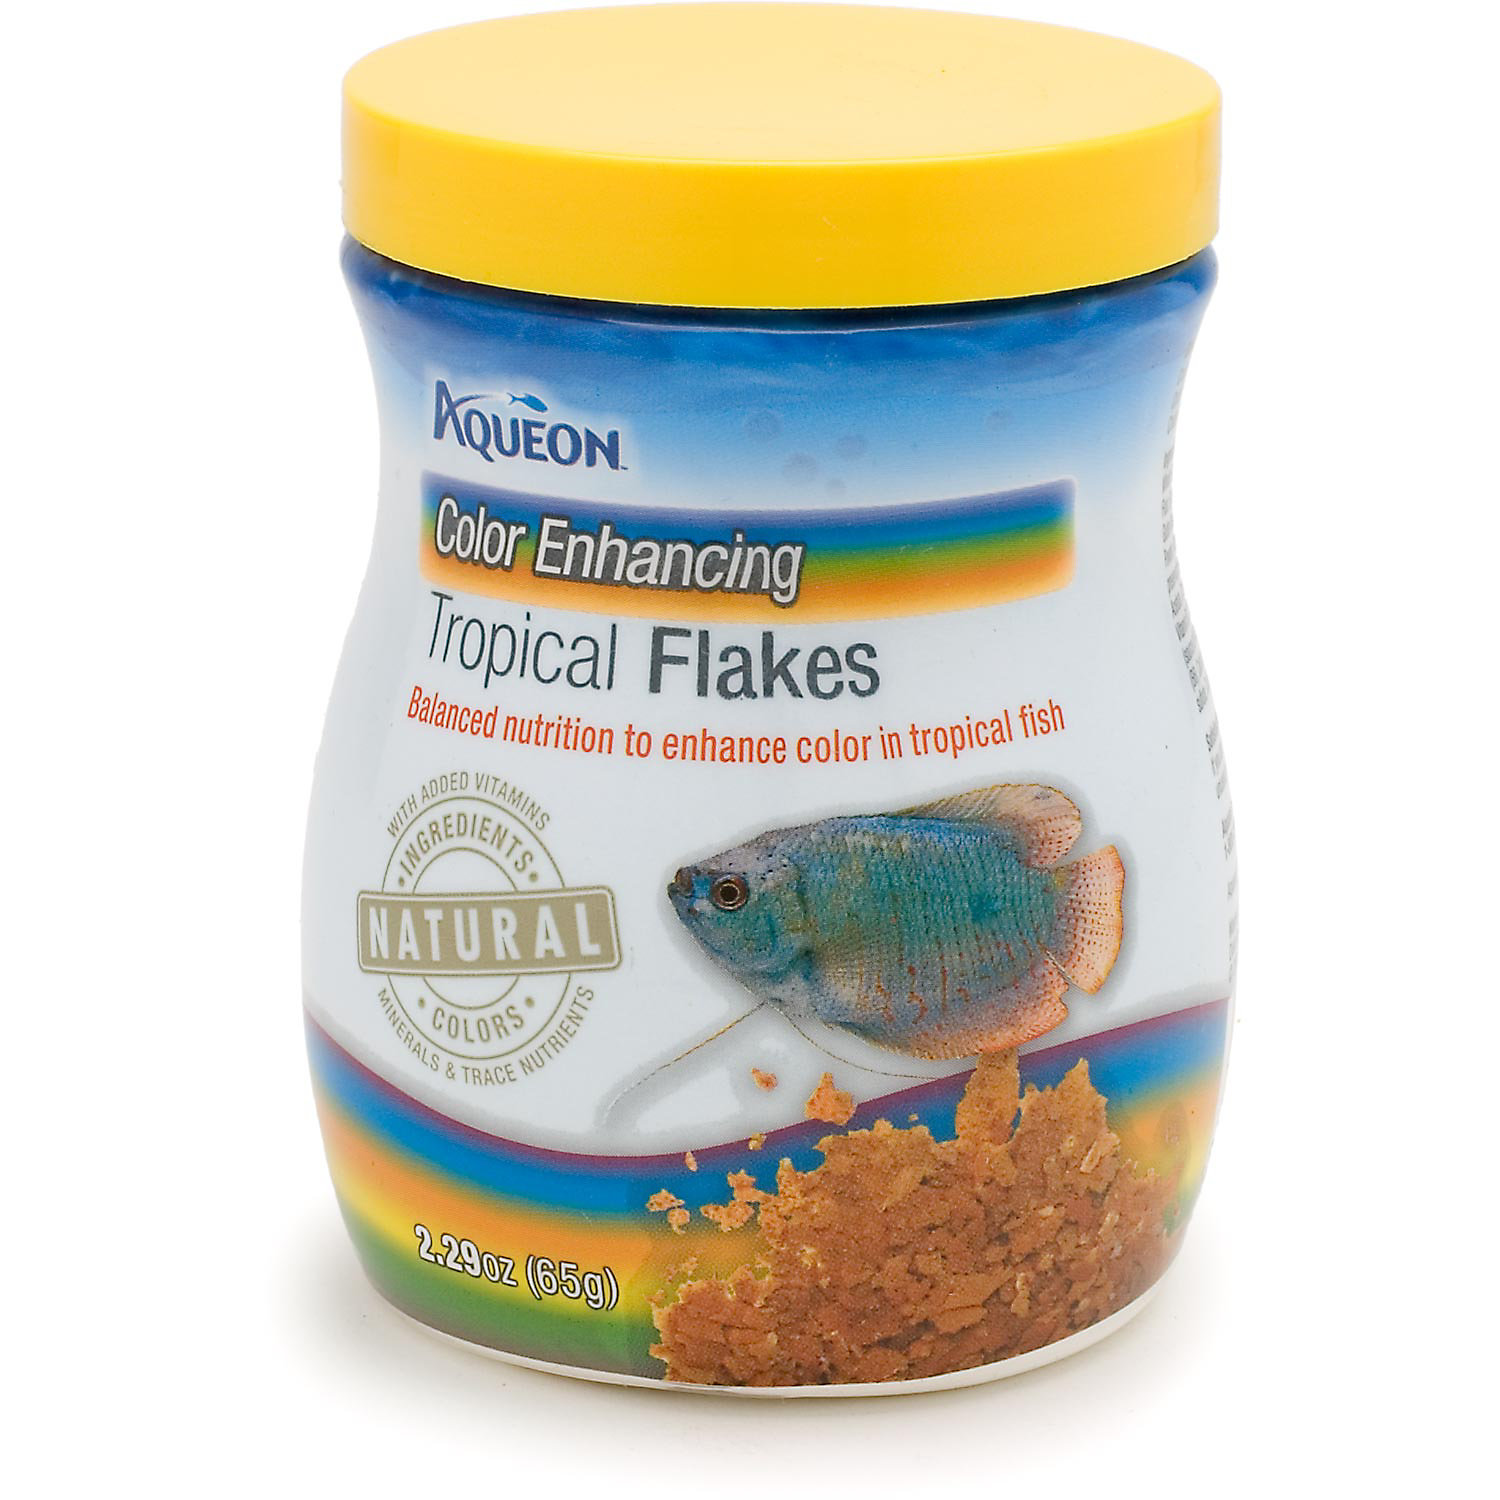 Aqueon Color Enhancing Tropical Flakes 2.29 Oz.